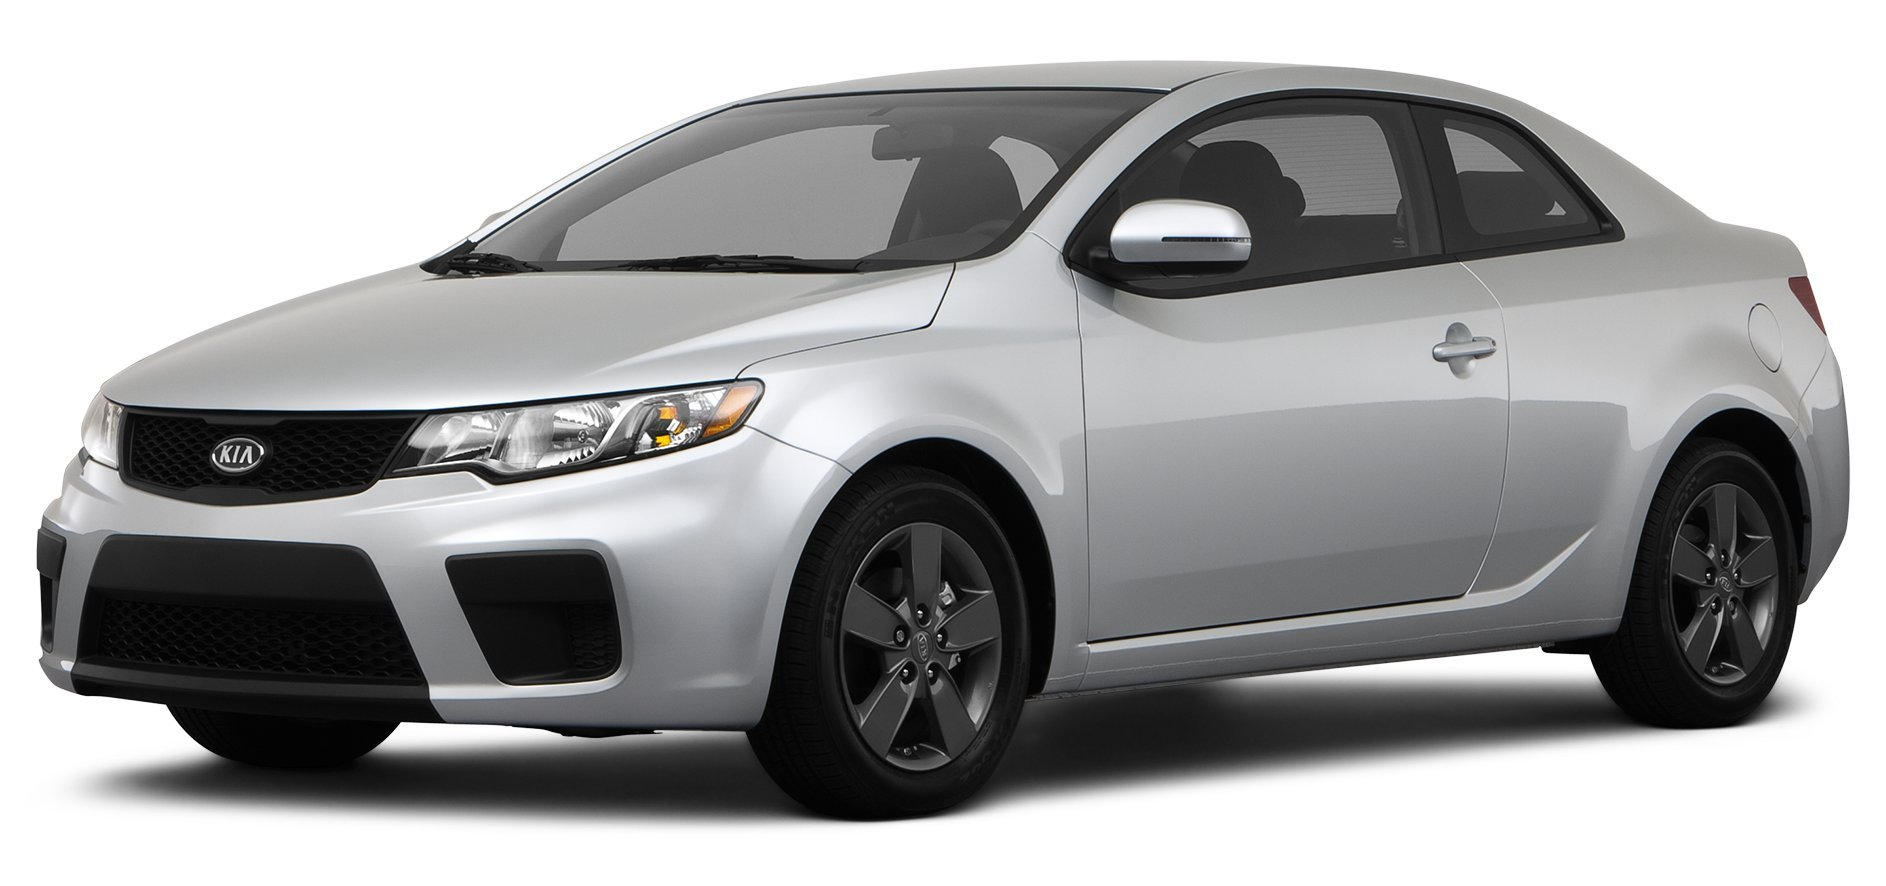 2012 kia forte koup reviews images and specs vehicles. Black Bedroom Furniture Sets. Home Design Ideas